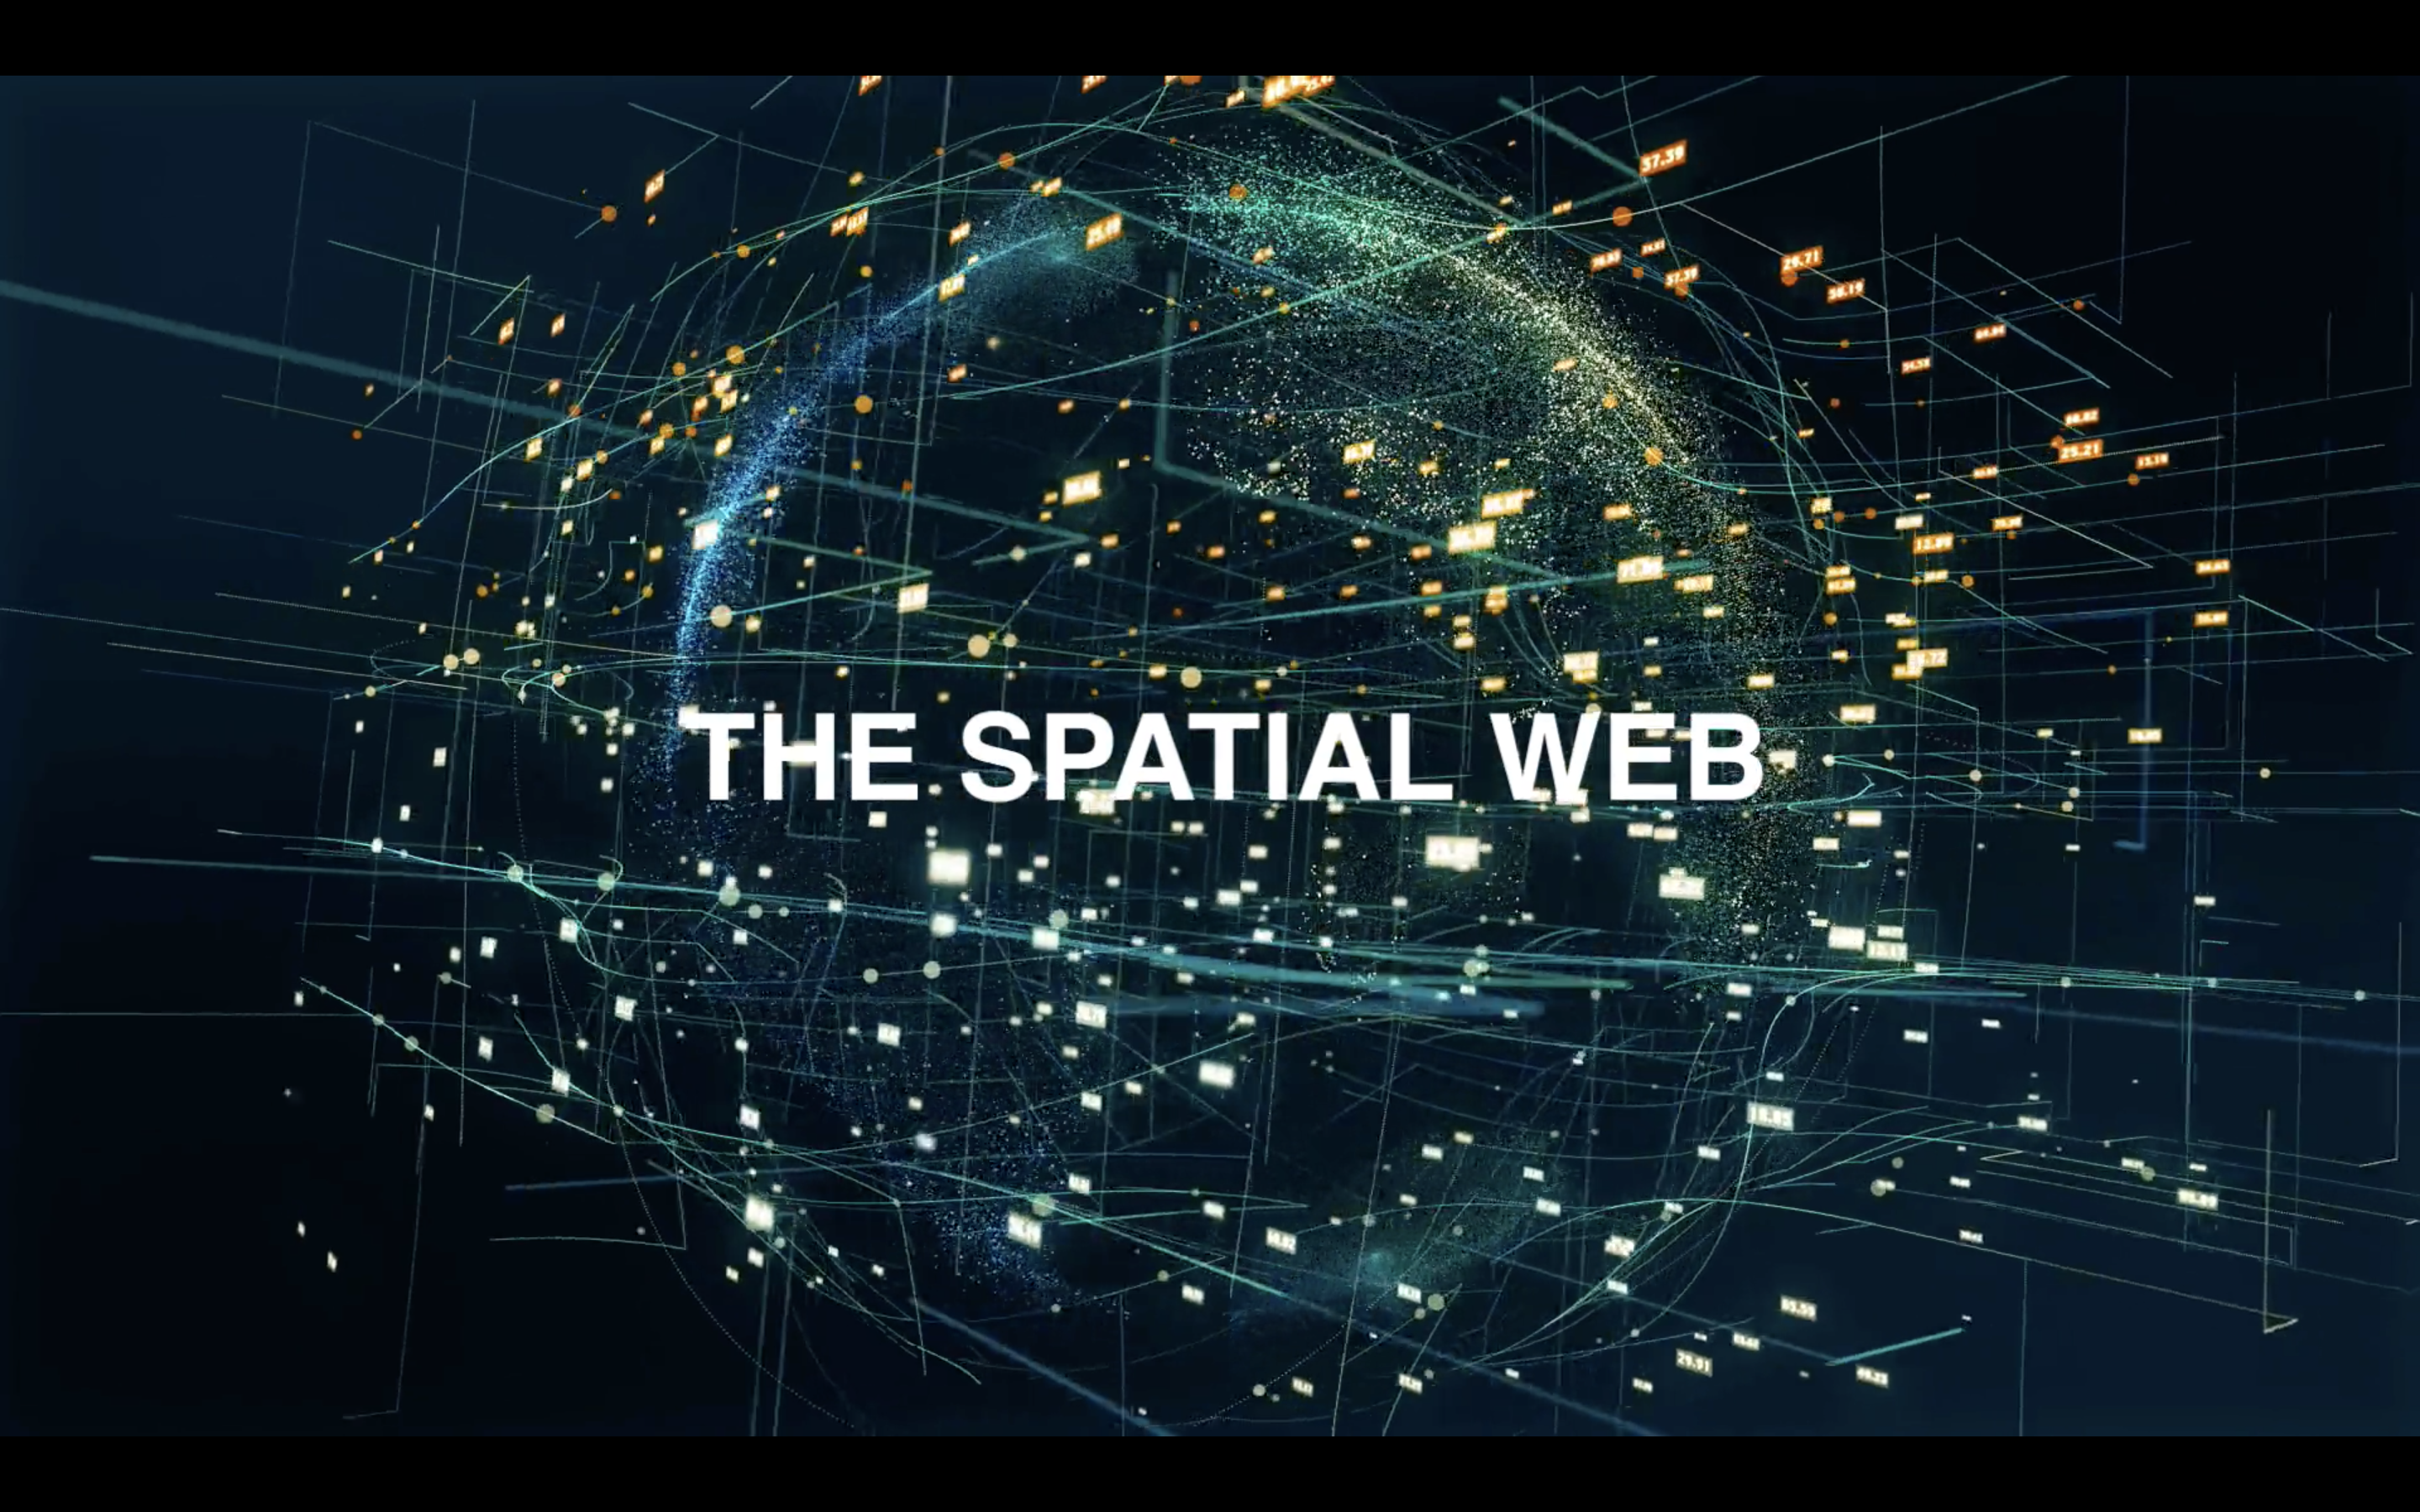 The Spatial Web and Web 3.0